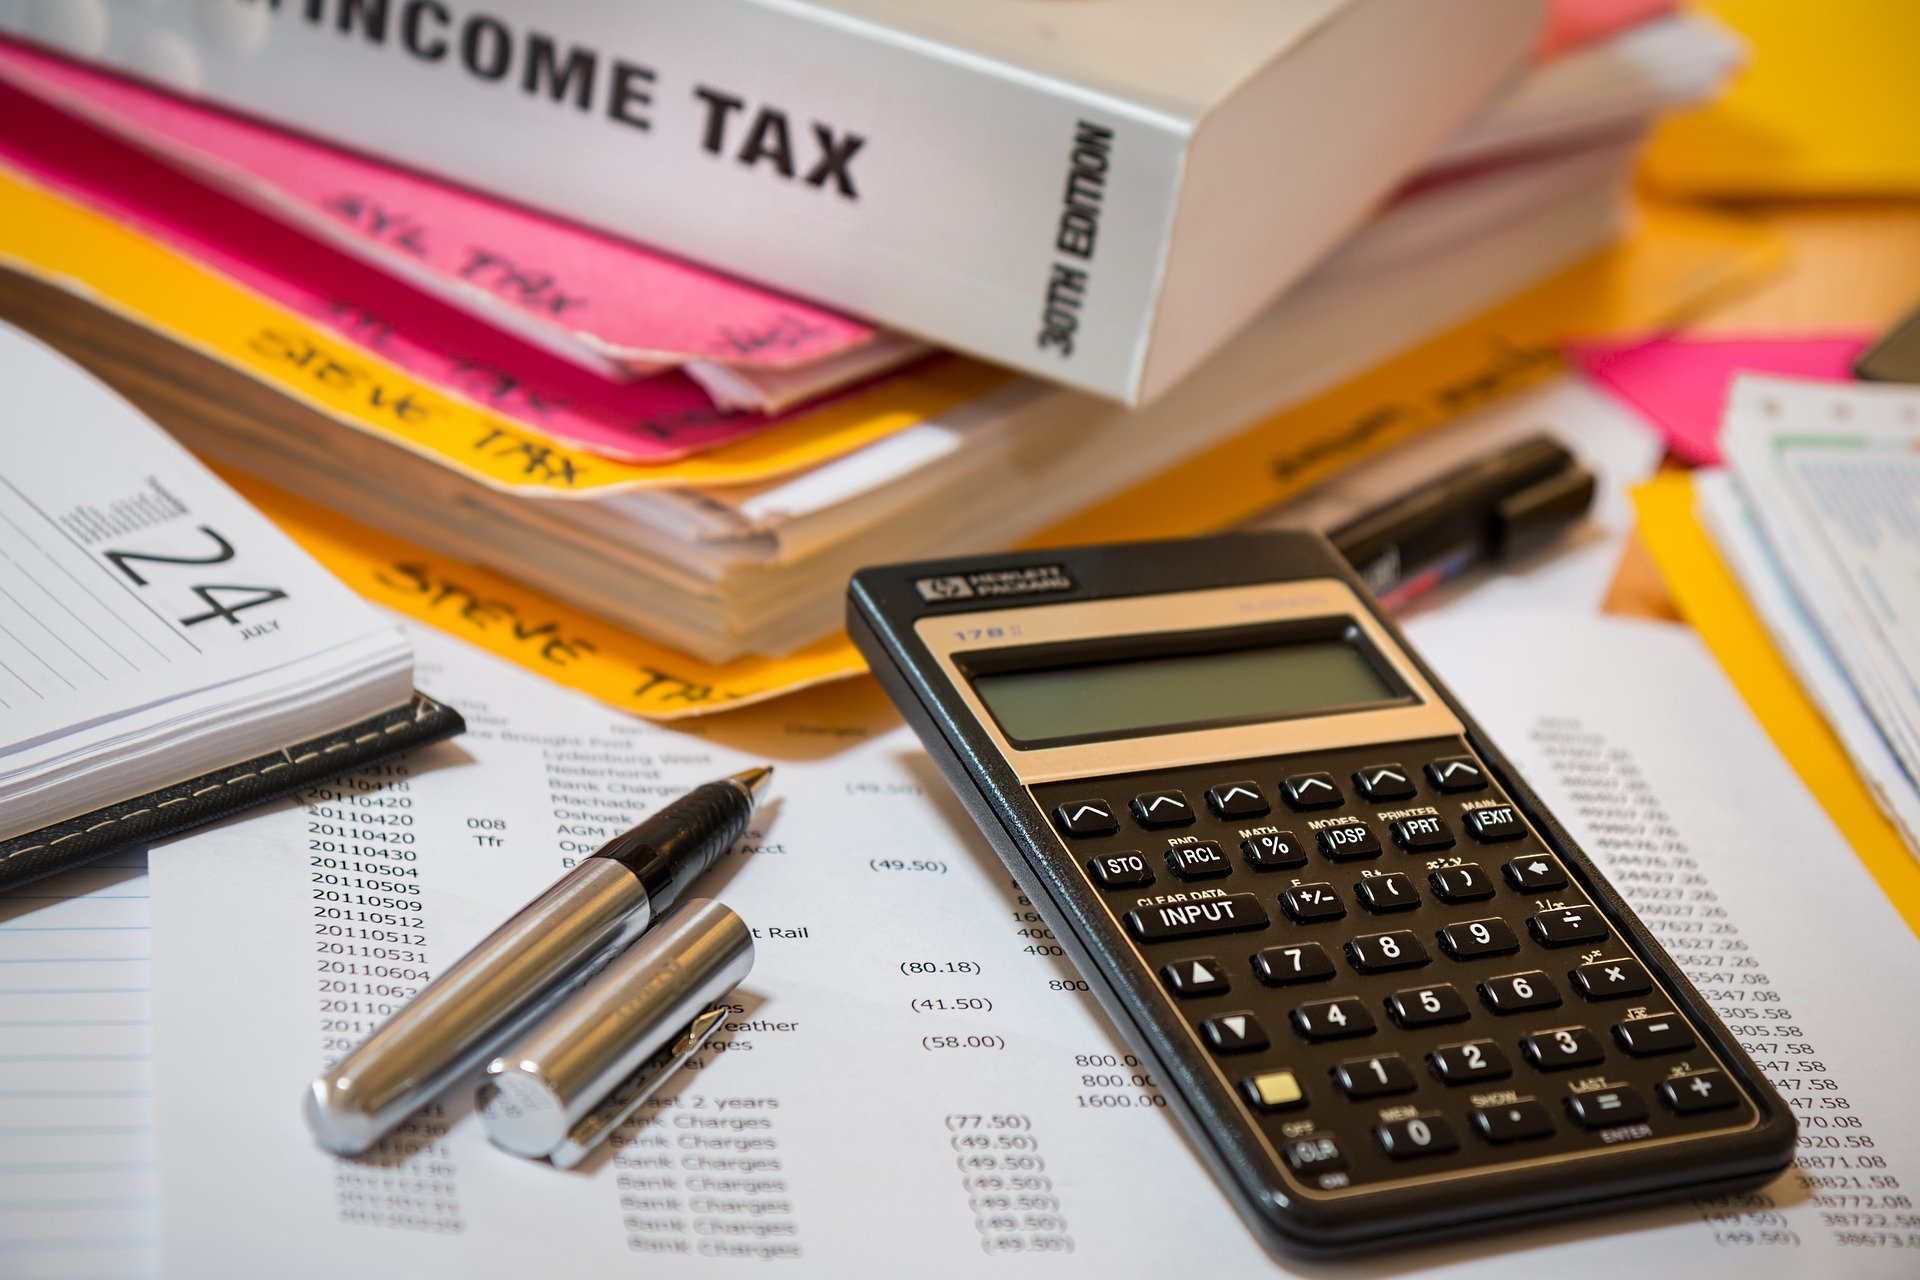 calculator and pile of tax books